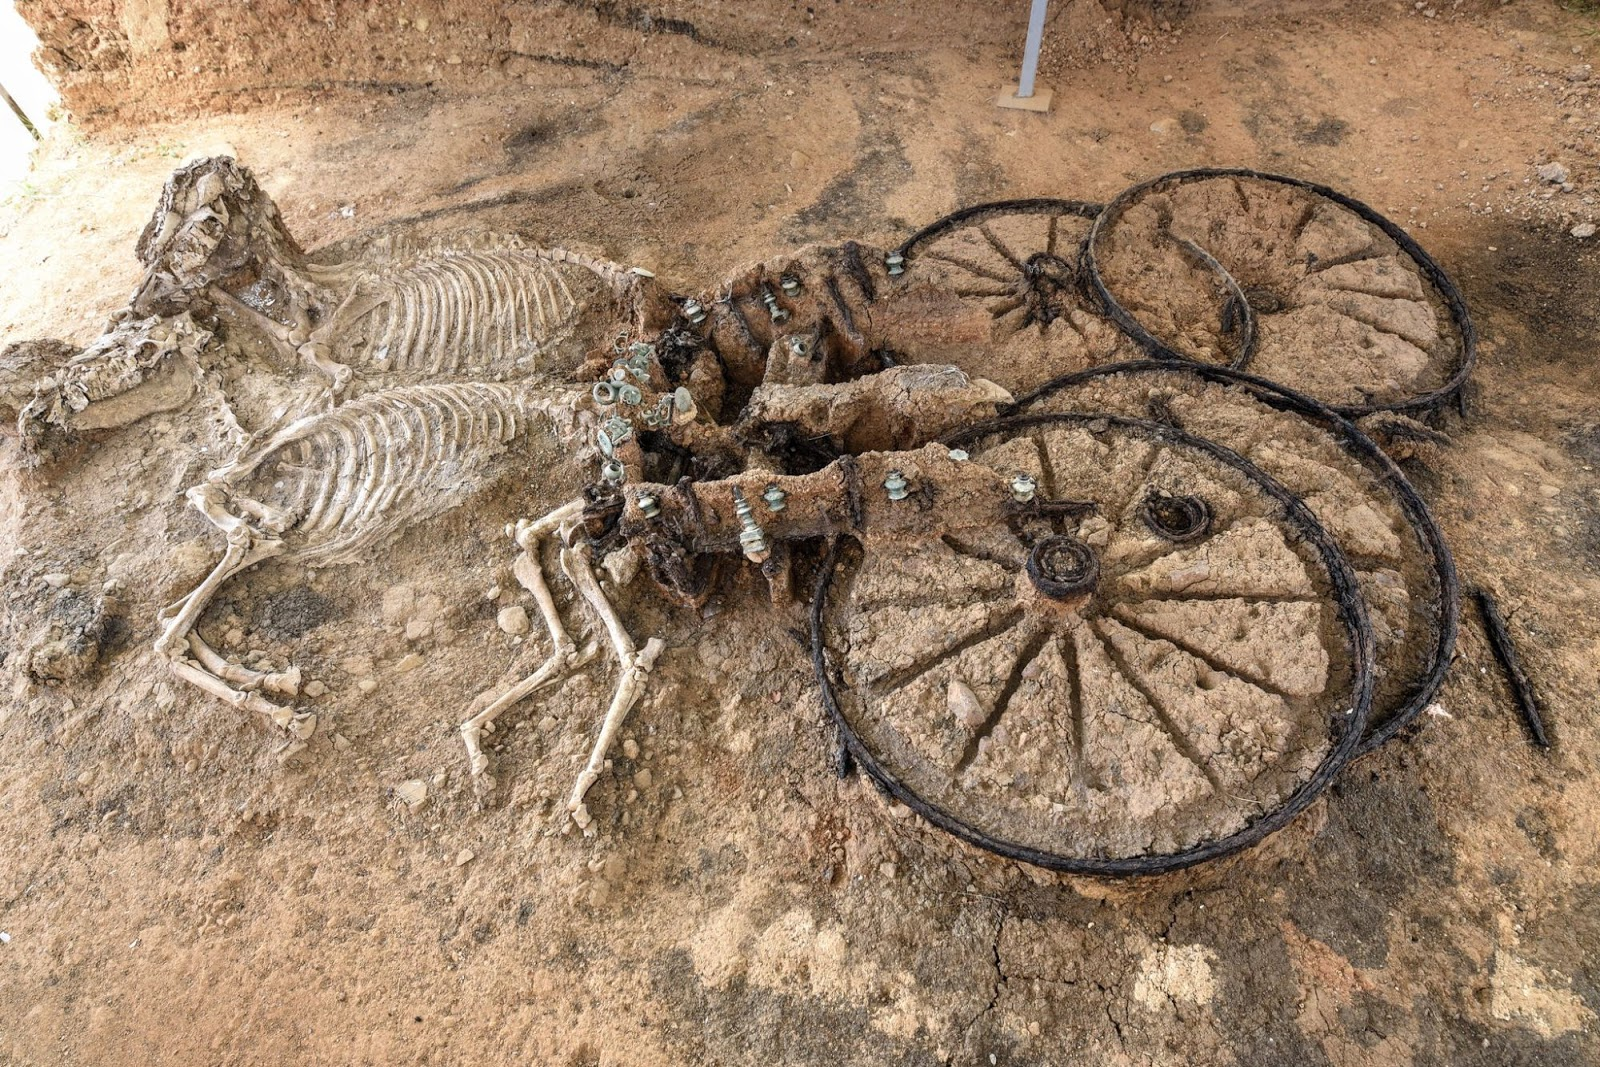 An 2000-Year-Old Thracian Chariot With Horse Skeletons Found in the Village of Karanovo, Bulgaria